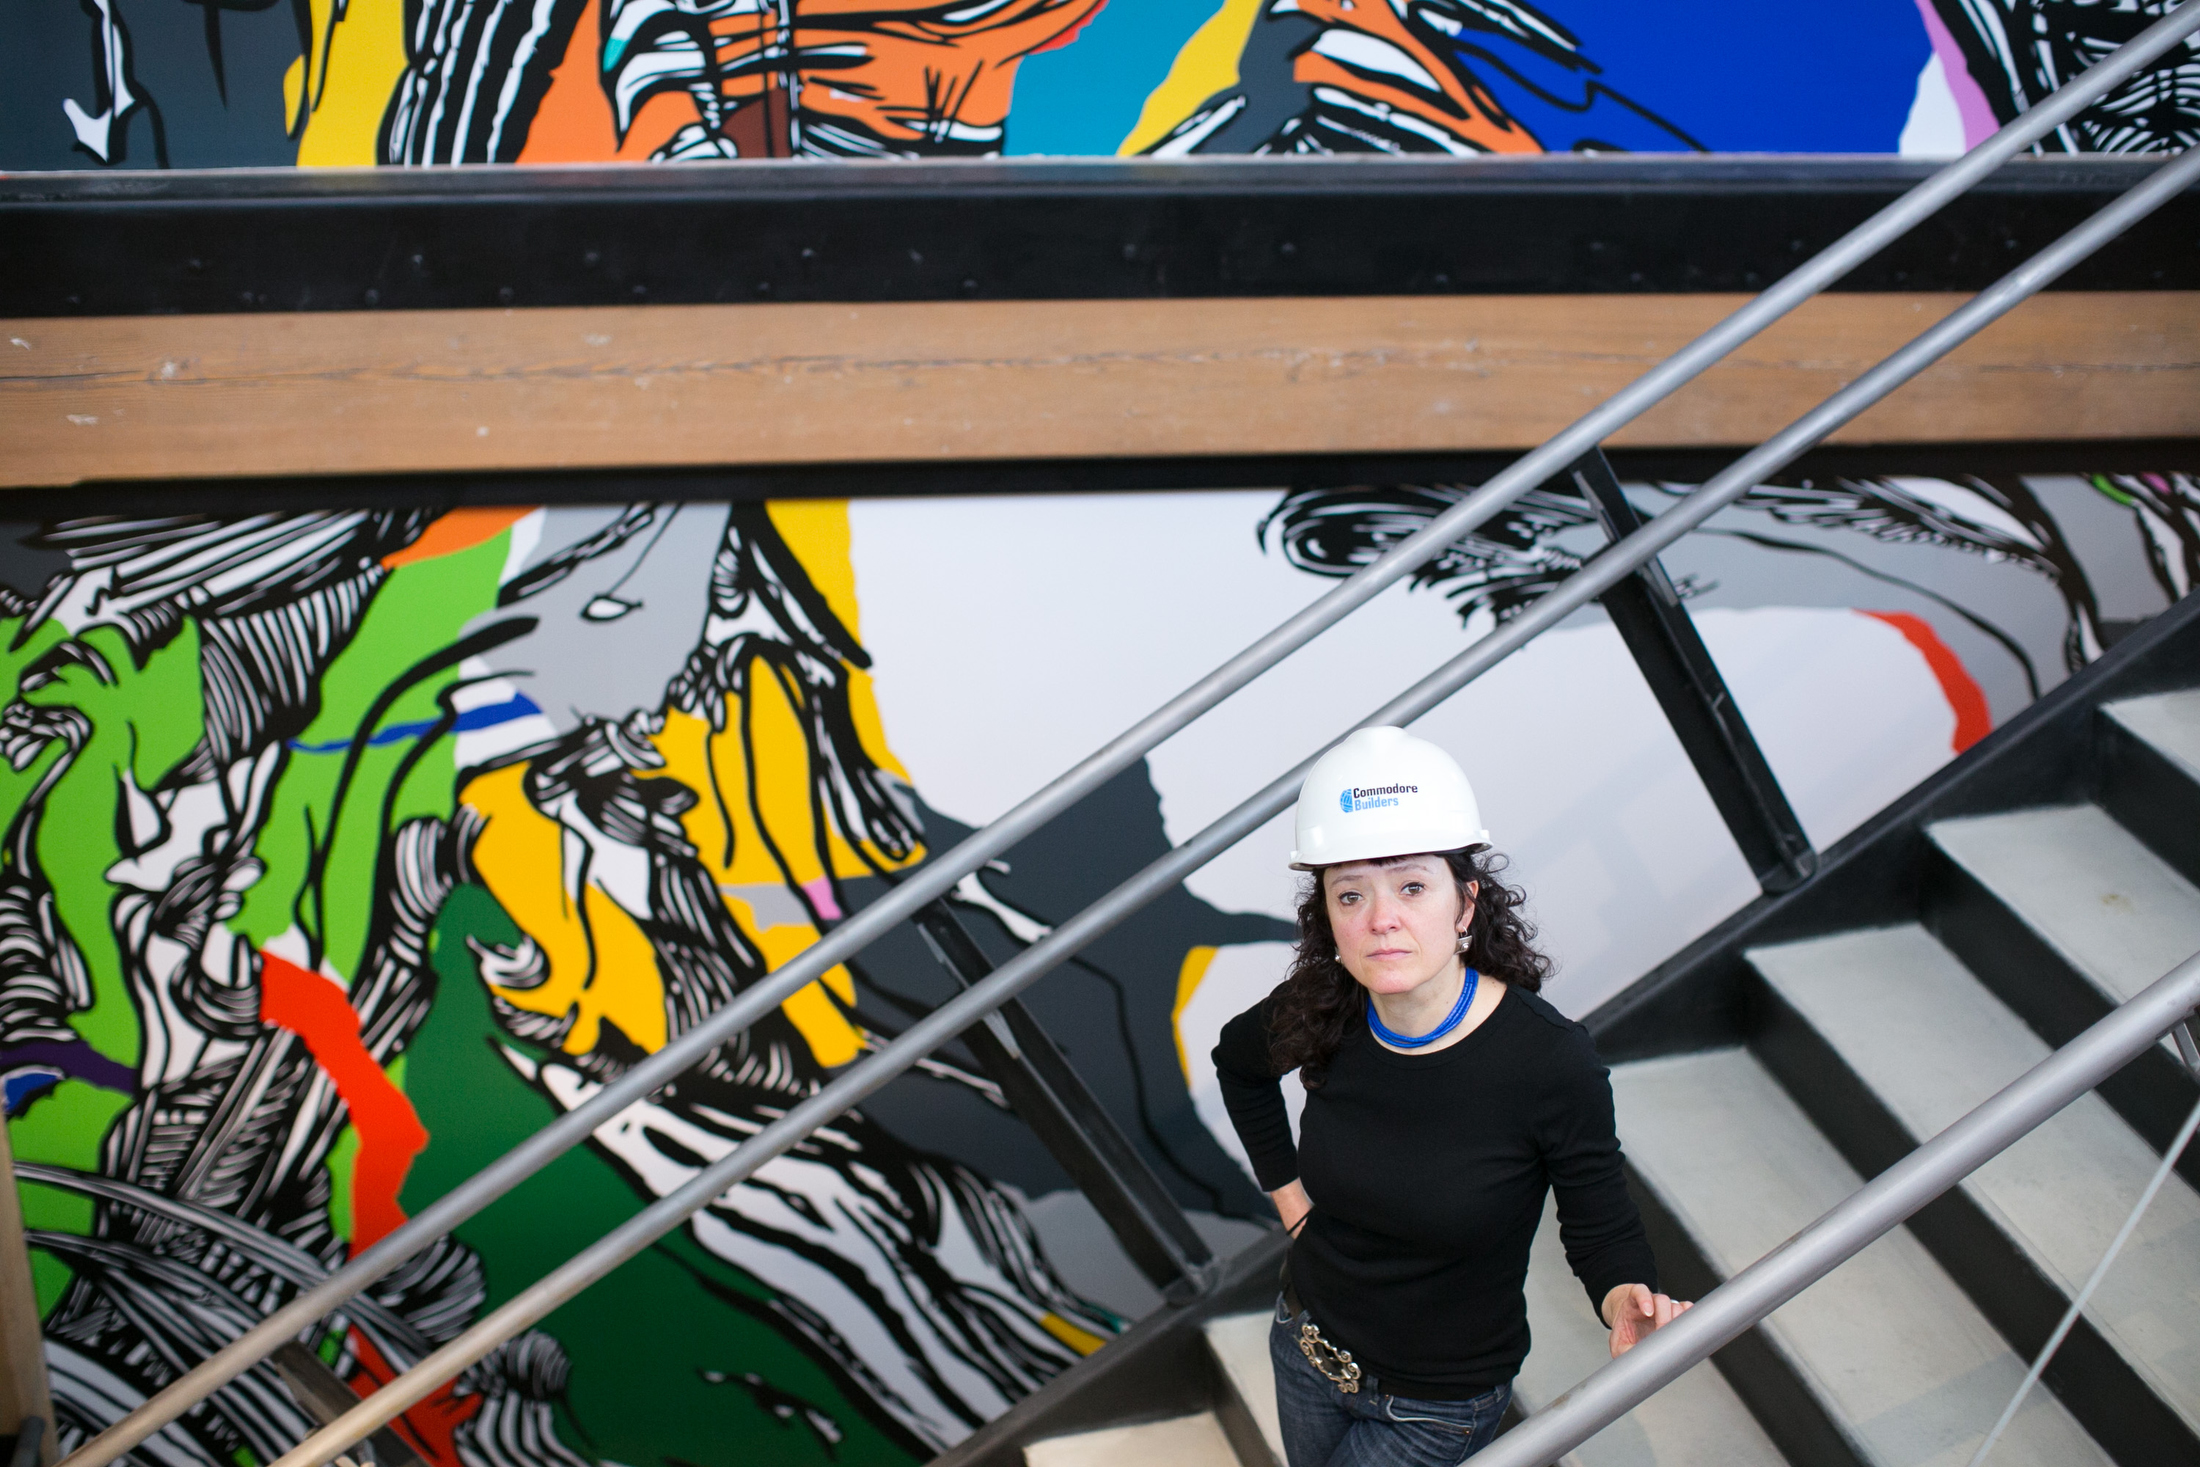 03/12/2015 - Mural artist Sophia Ainsley poses with her piece titled 'In Person, 574' which is being installed in the renovated 574 Boston Avenue on Thursday, March 12, 2015. (Matthew Healey for Tufts University)